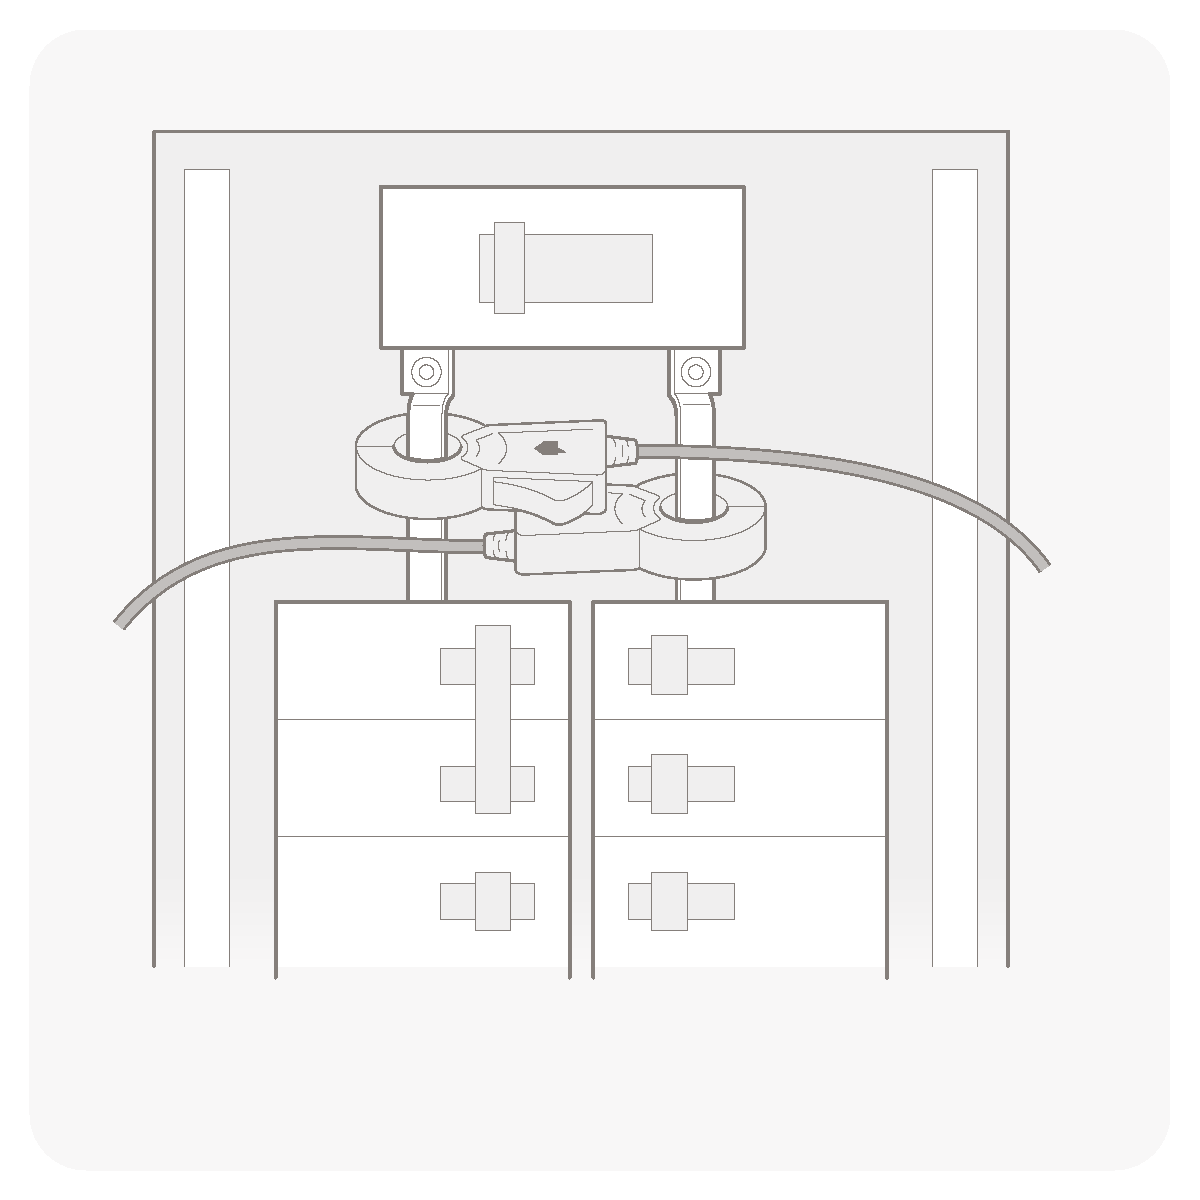 Technical_Illustration___201809___bus_bar_install_A.png